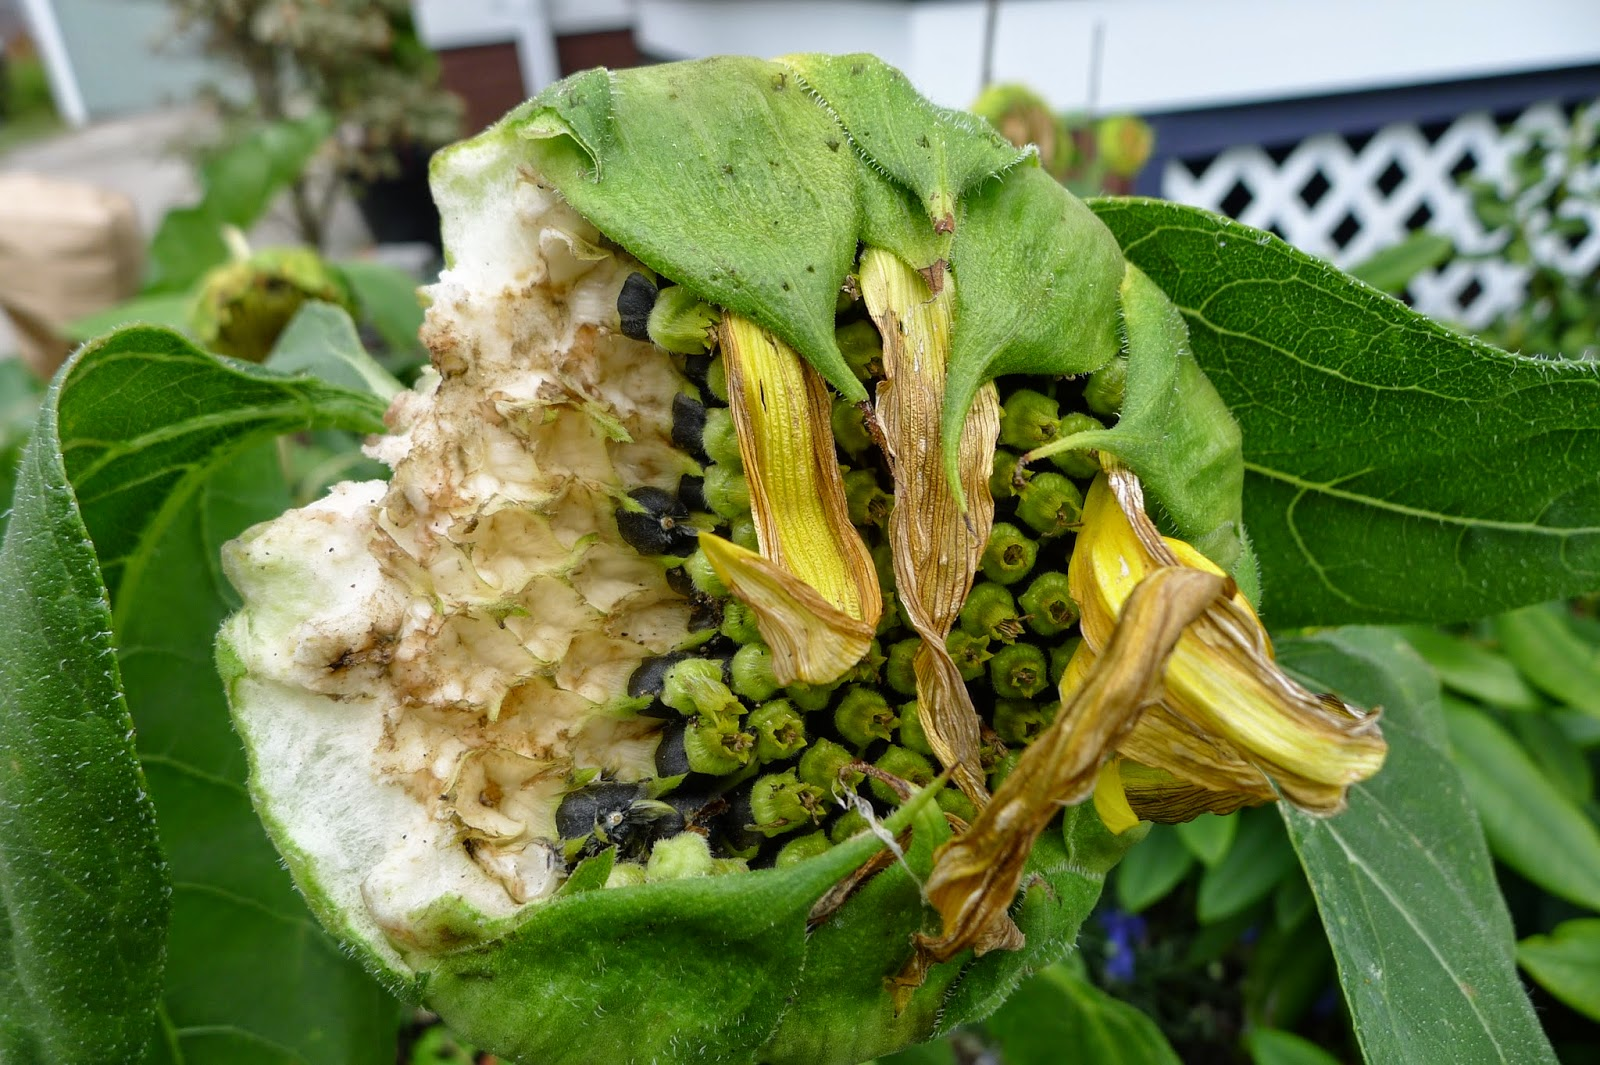 Sunseed sunflower eaten by squirrel